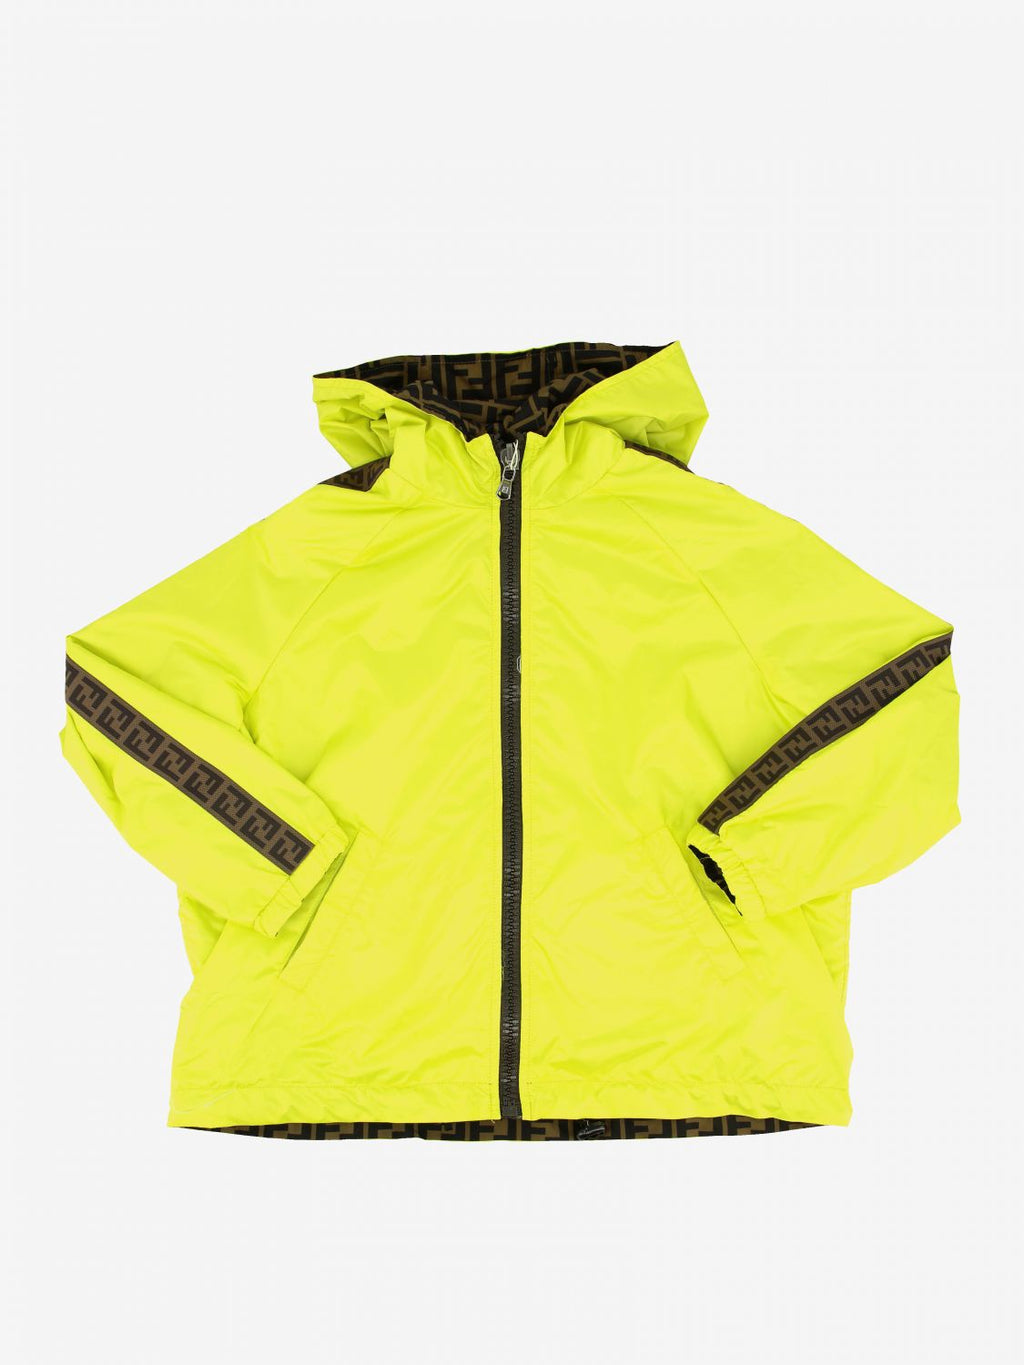 Fendi K-Way Jacket